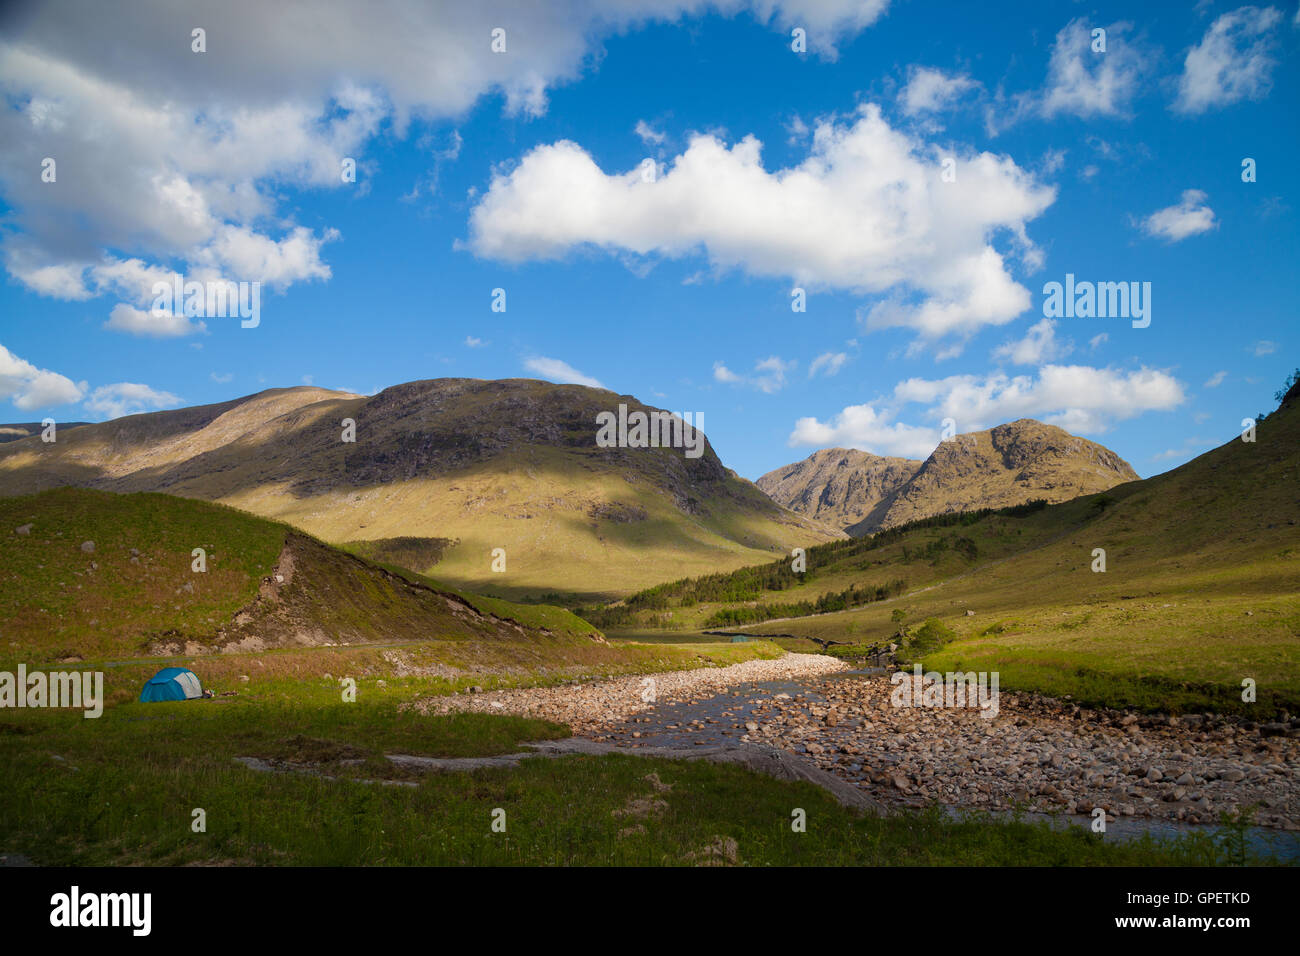 Wild camping next to the river in Glen Etive, Highlands Scotland. - Stock Image